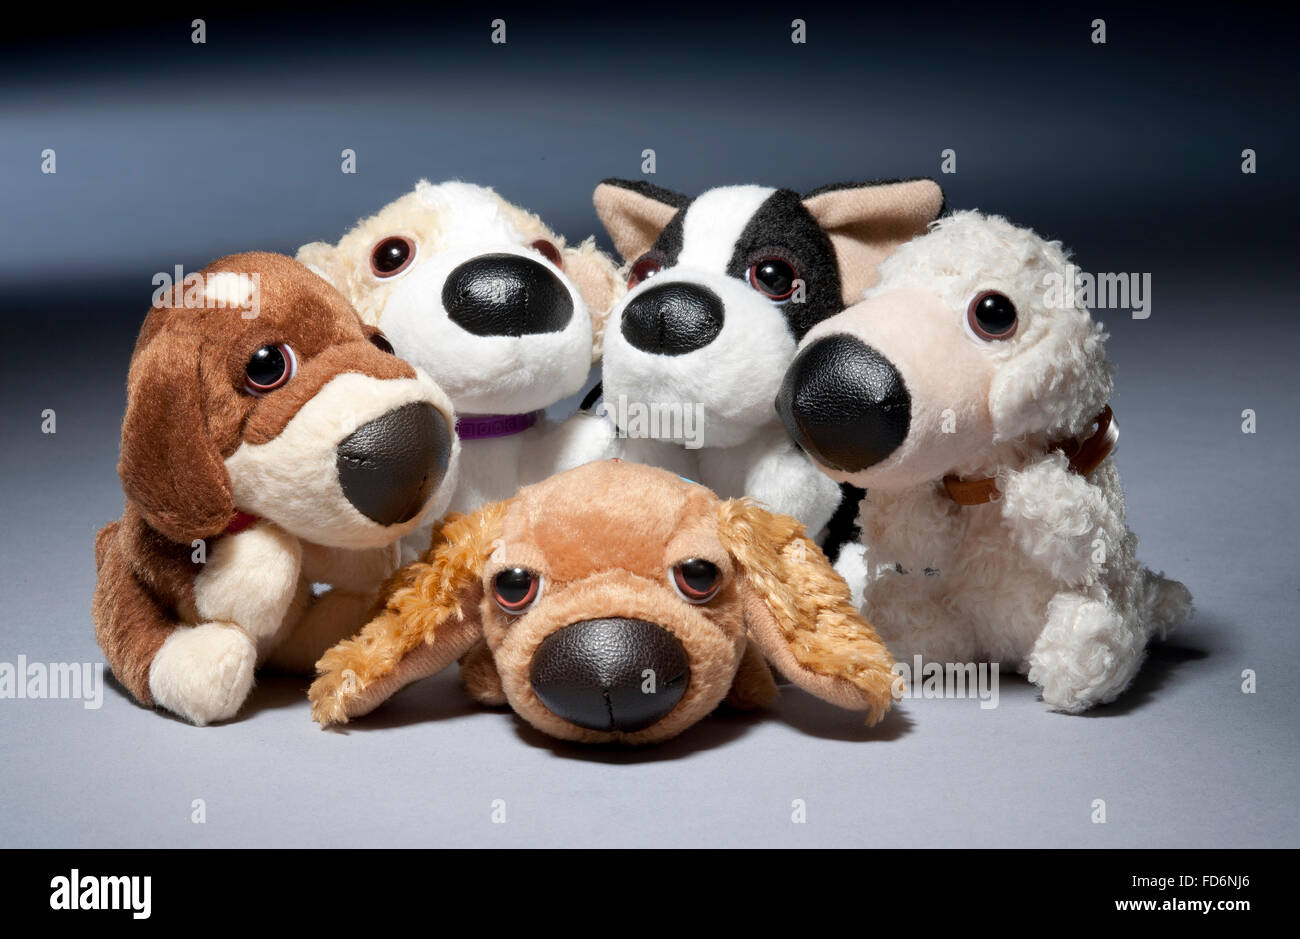 Group of Mcdonalds toy dogs - Stock Image